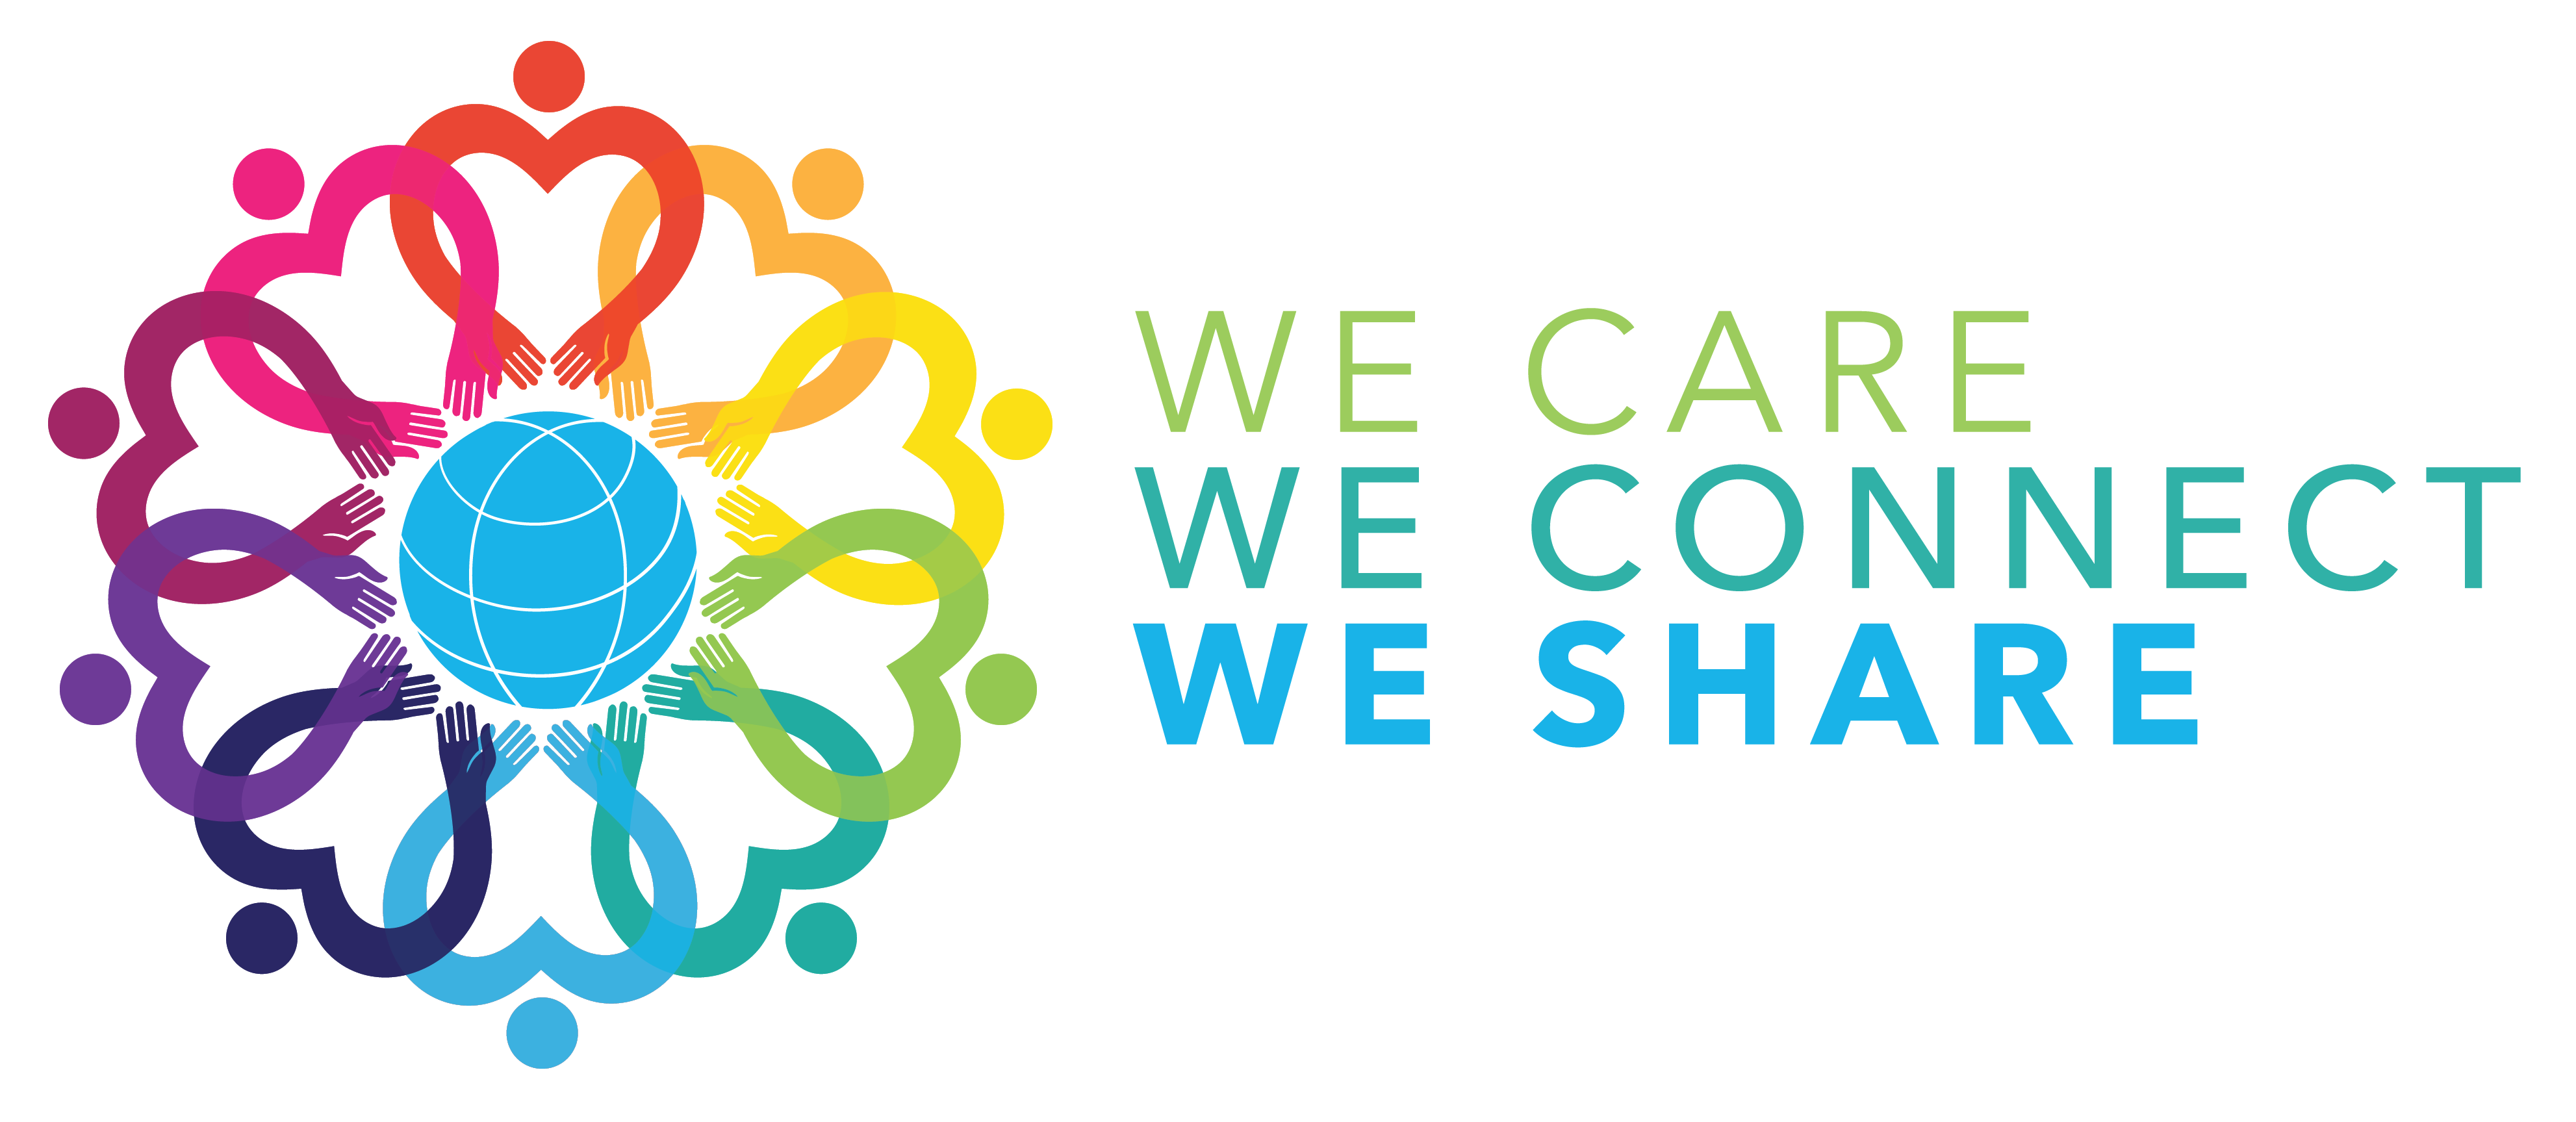 We Care, We Connect, We Share